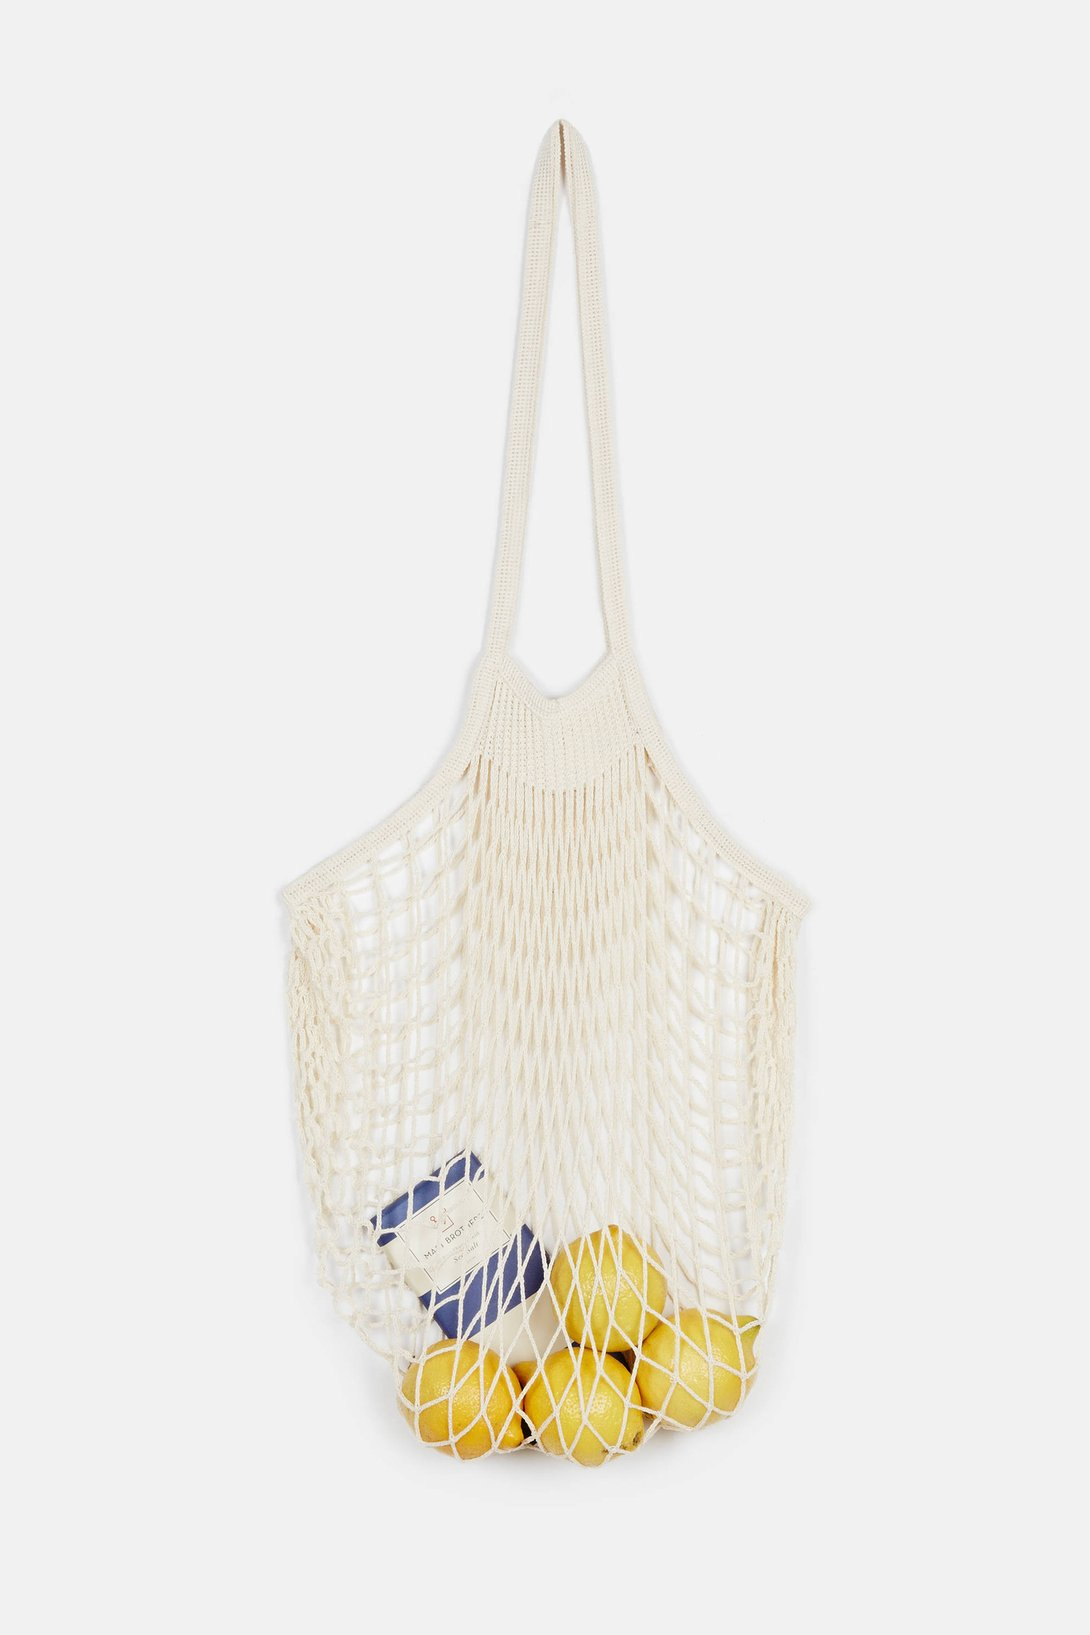 Collected by The Line Net Bag, $22